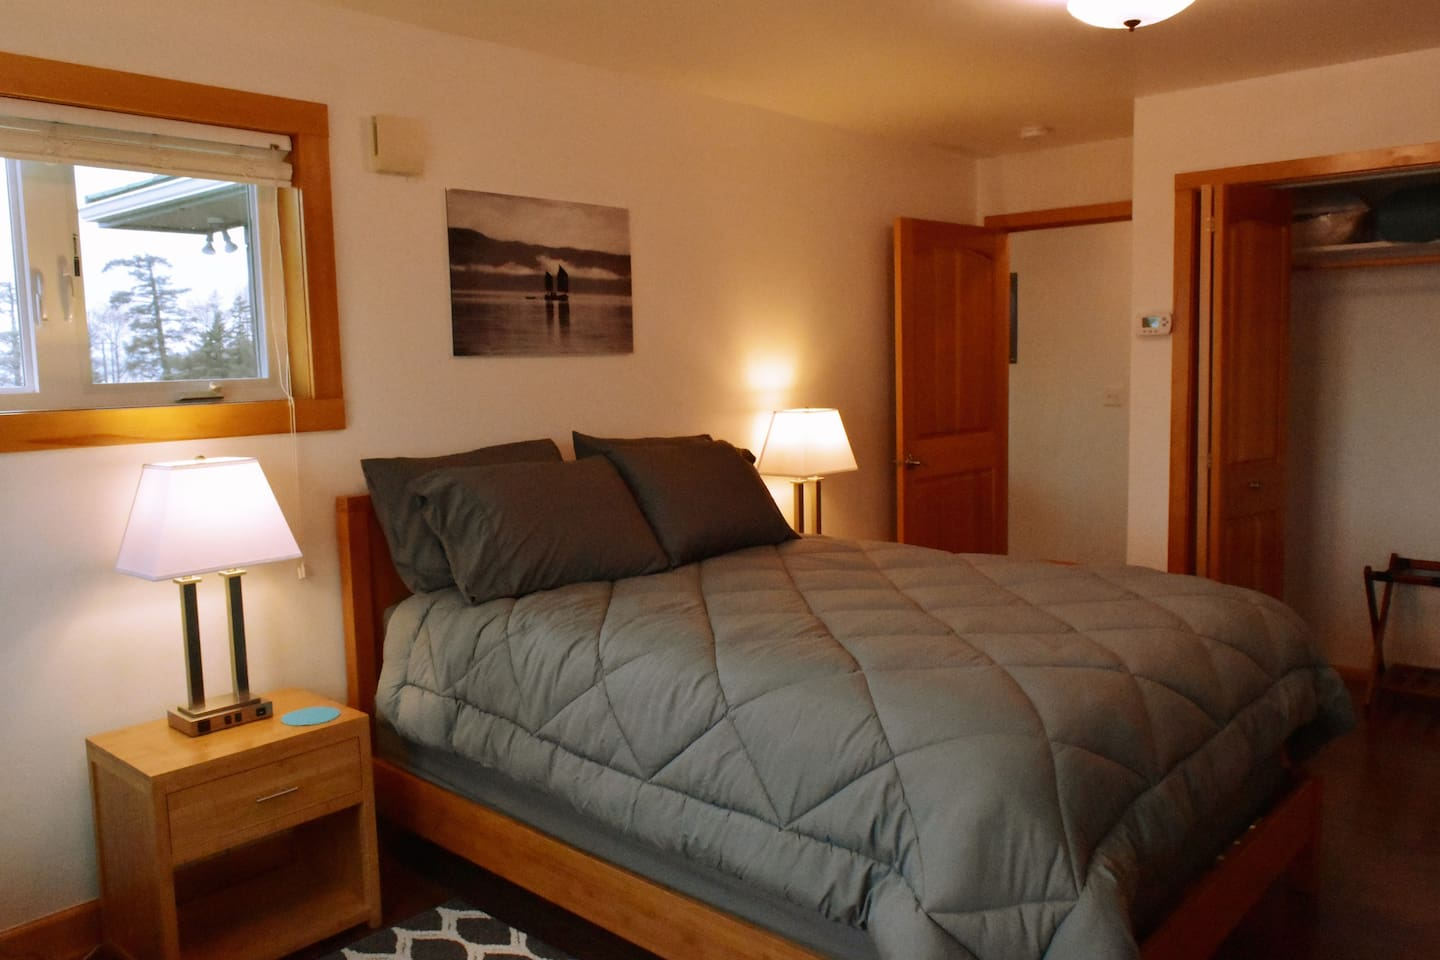 Comfortable queen size bed. This room offers stunning views; a cozy couch and a large dresser. A 30 inch television which offers Directv for your viewing. The nightstands are equipped with several USB ports for charging your electronic devices.